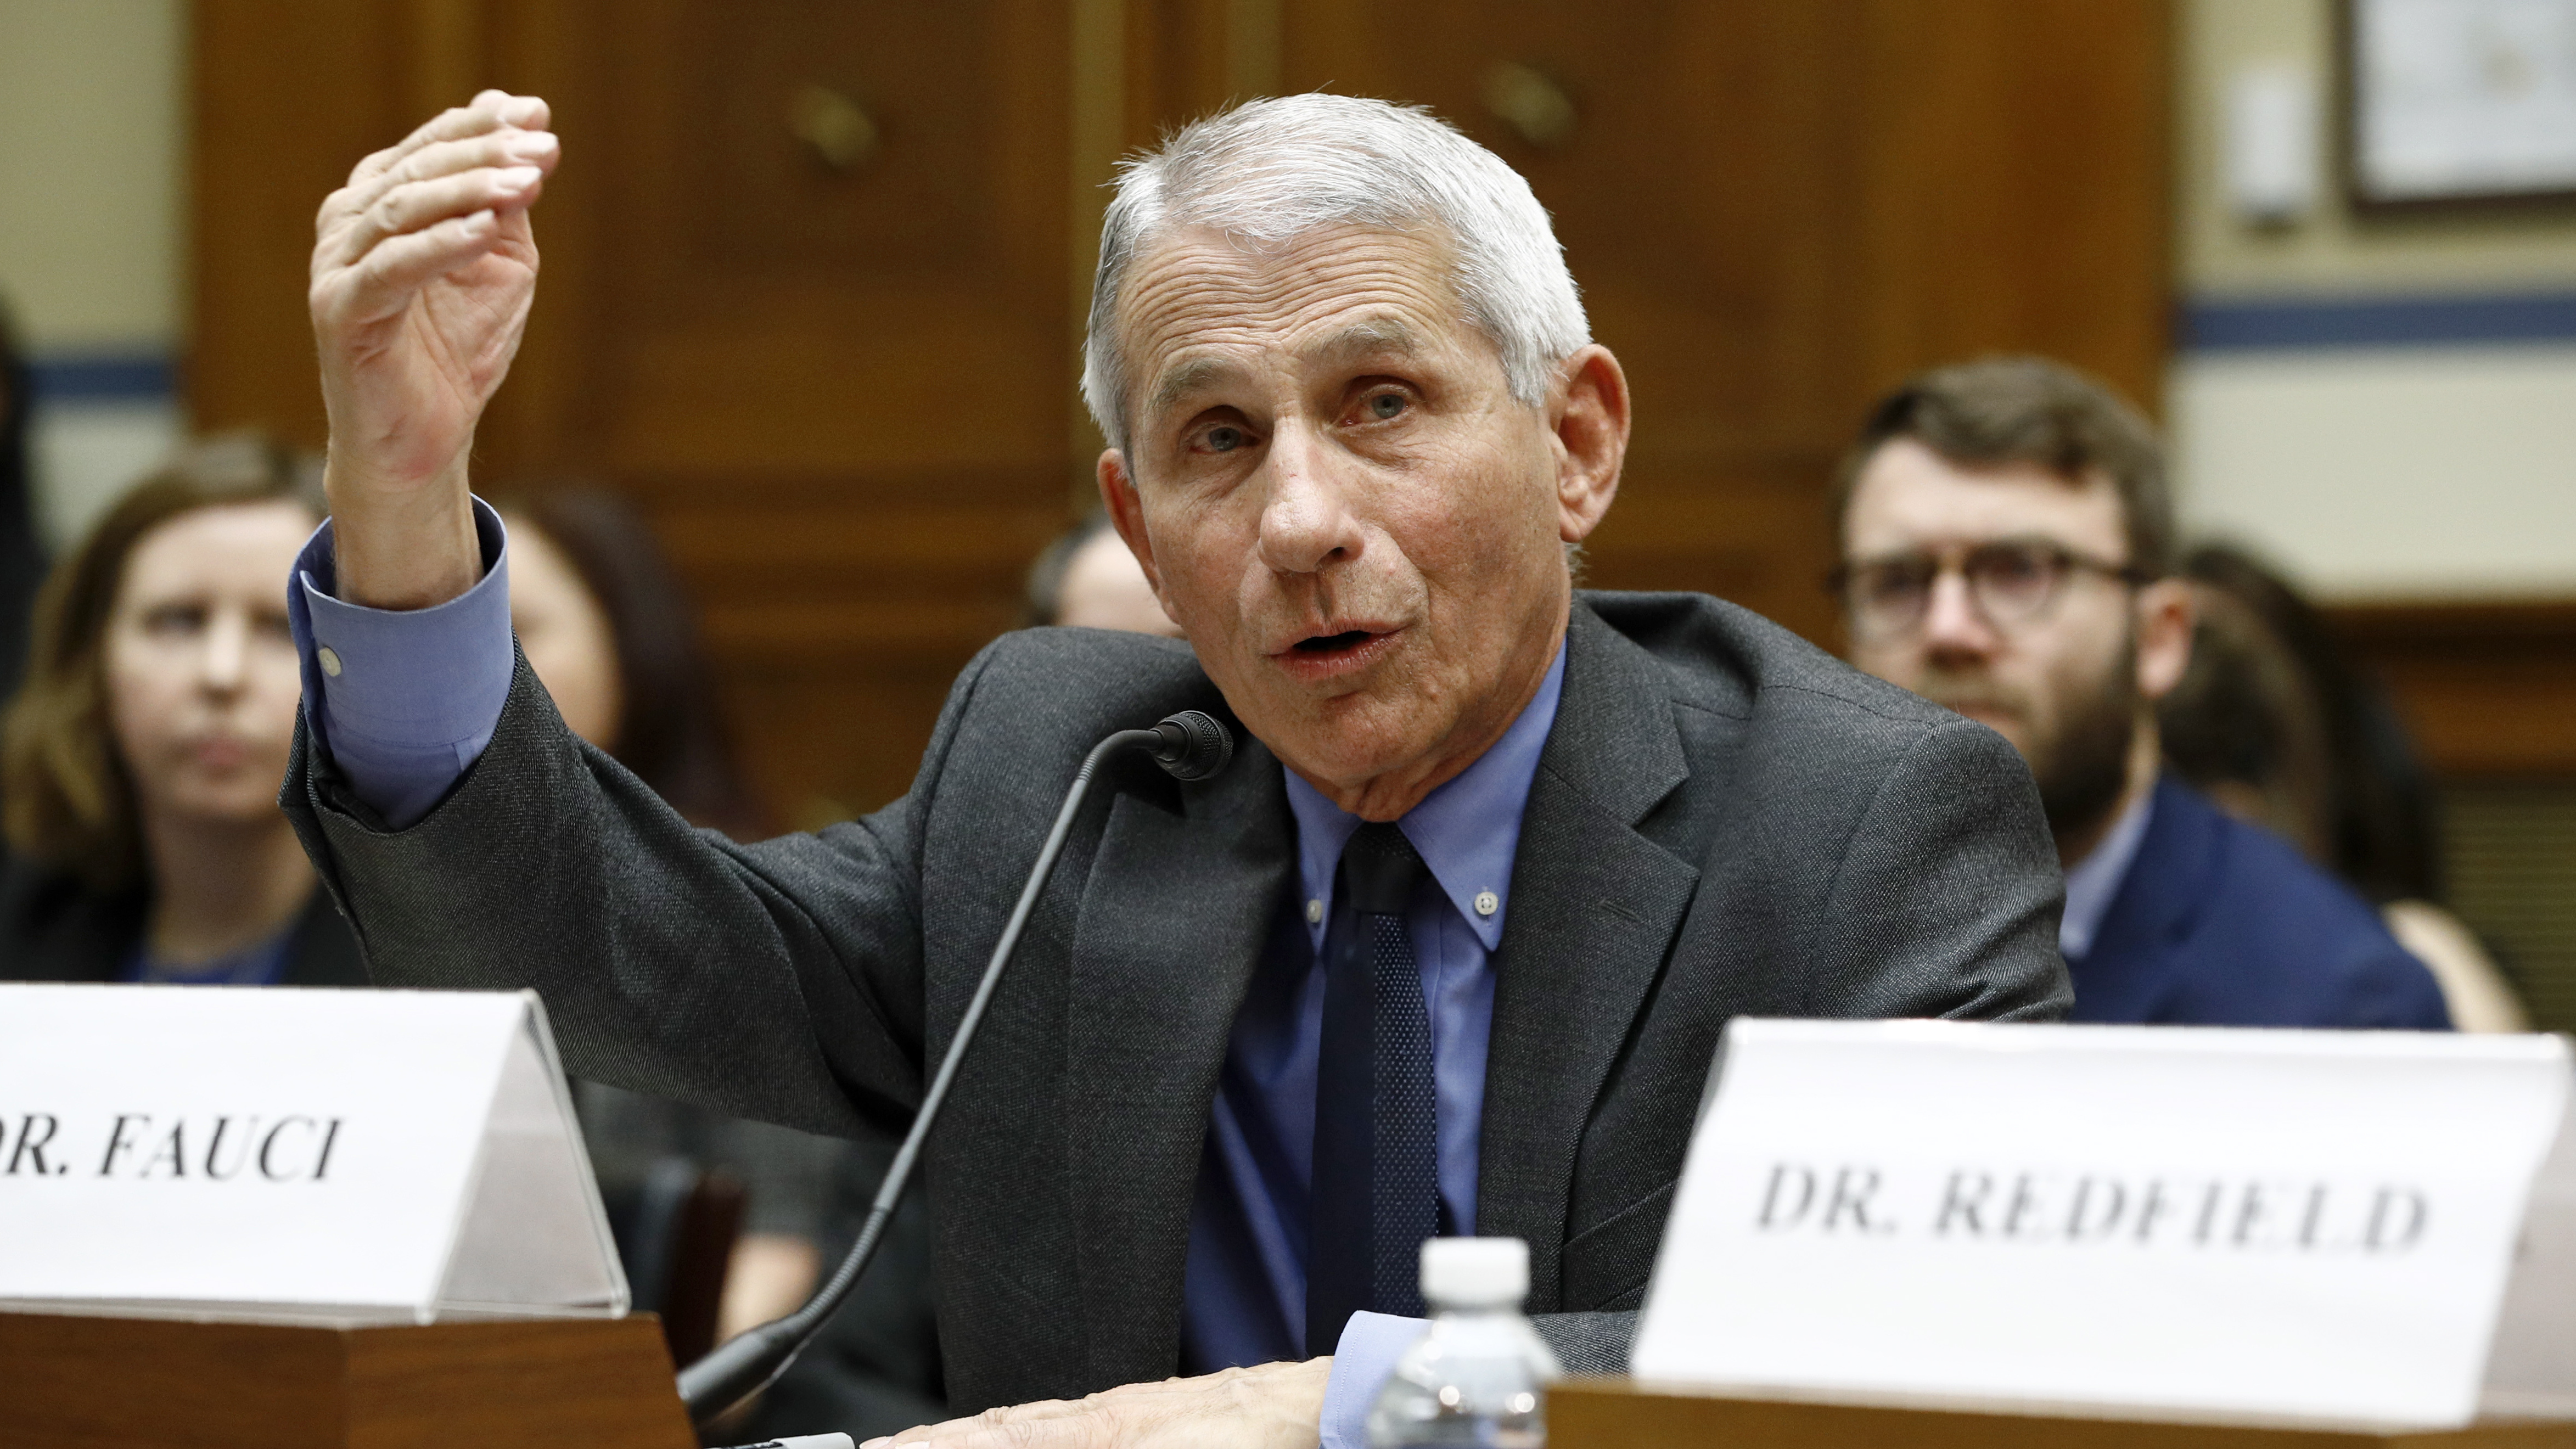 Dr. Fauci Confirms 'Worst Yet To Come' For US Coronavirus Spread